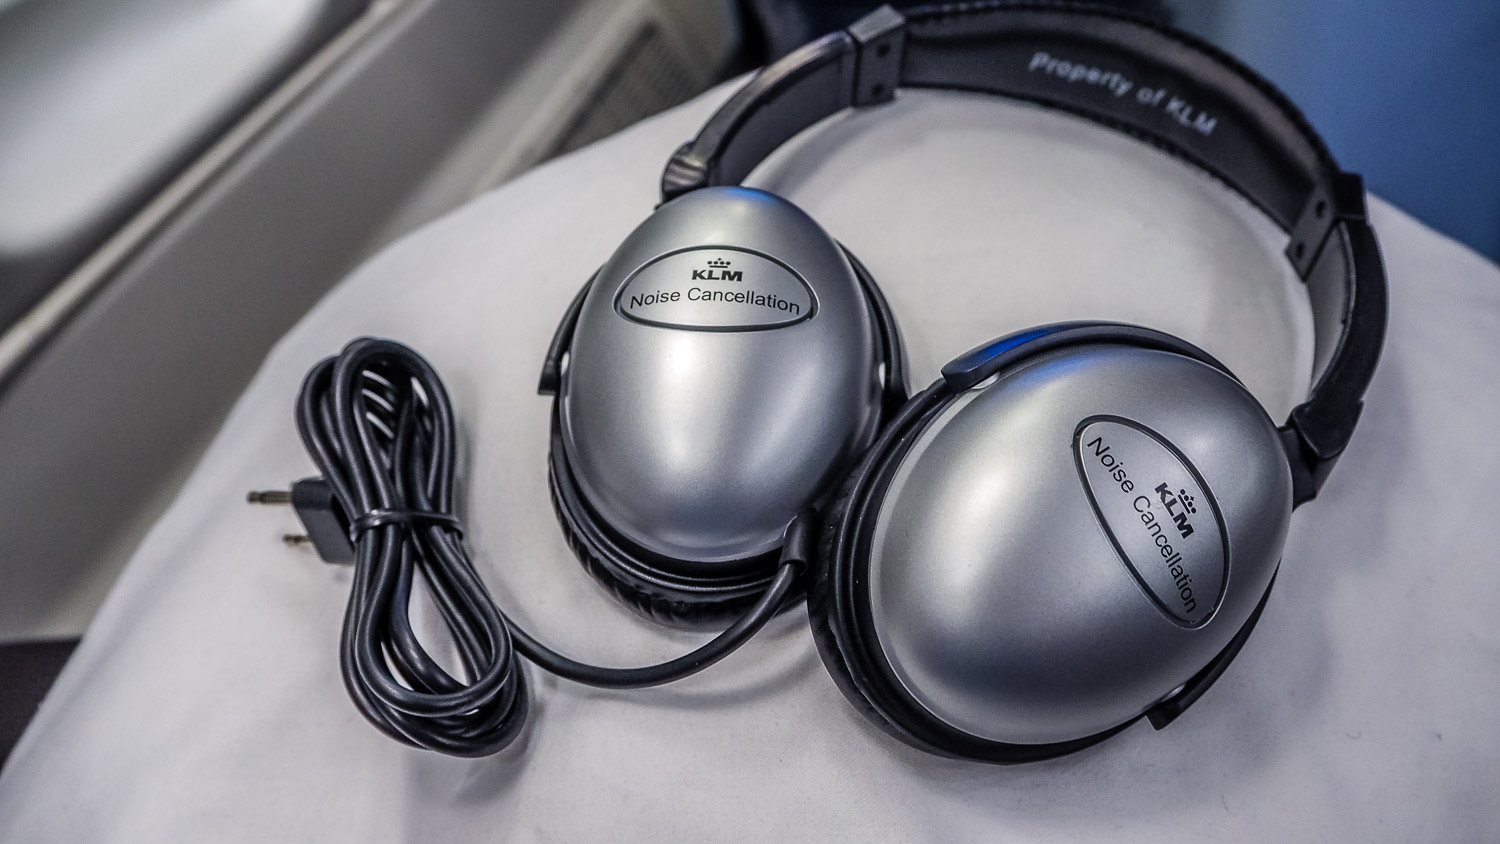 Headphones - KLM Business Class - by Britney Hope - The Wayward Post